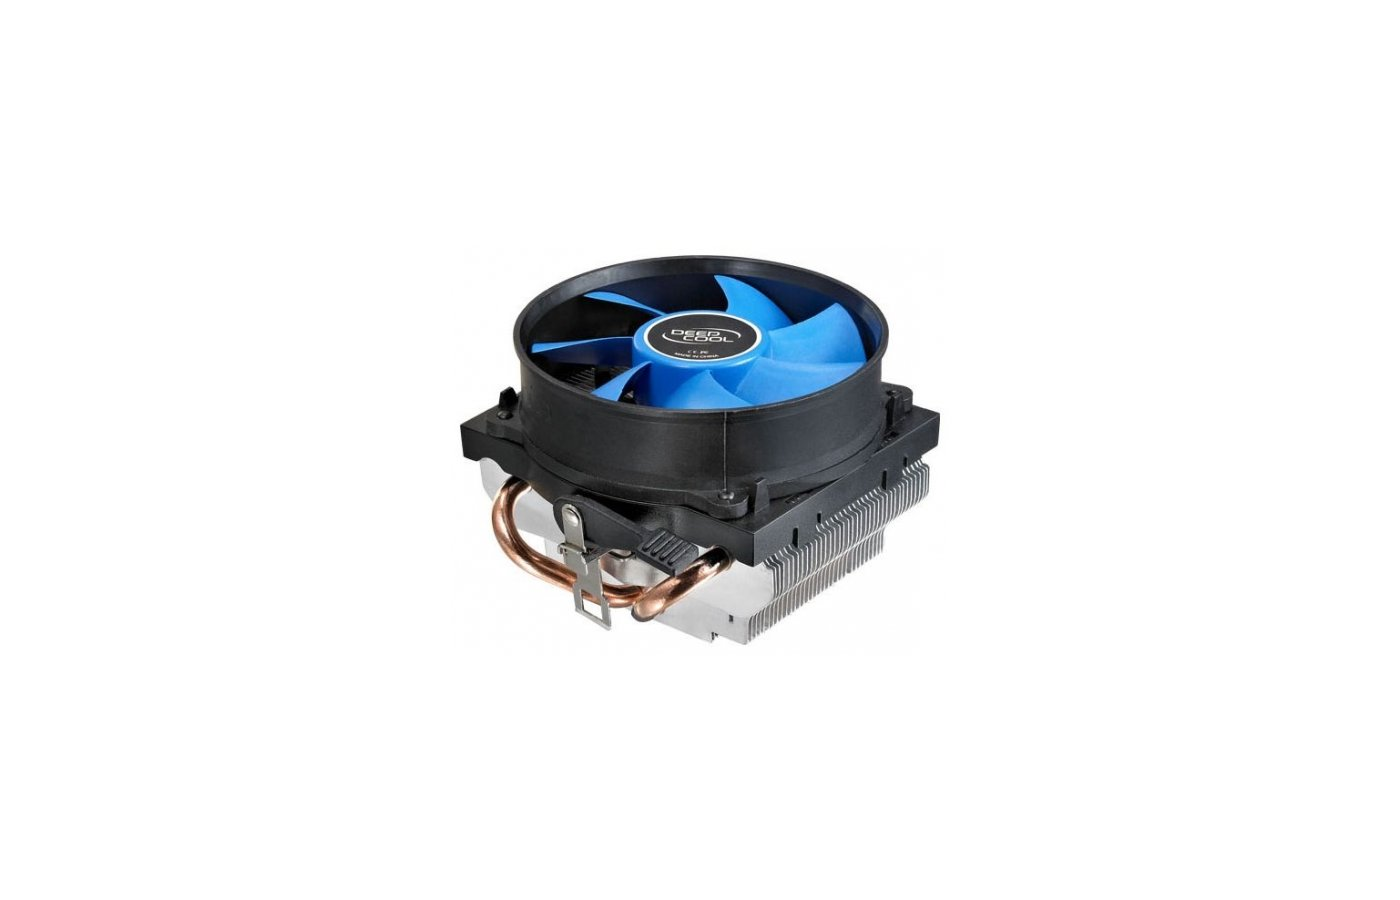 Охлаждение Deepcool BETA 200ST (B200 ST) Soc-FM2/FM1/AM3+/AM3/AM2+ 3pin 30dB Al+Cu 95W 307g скоба